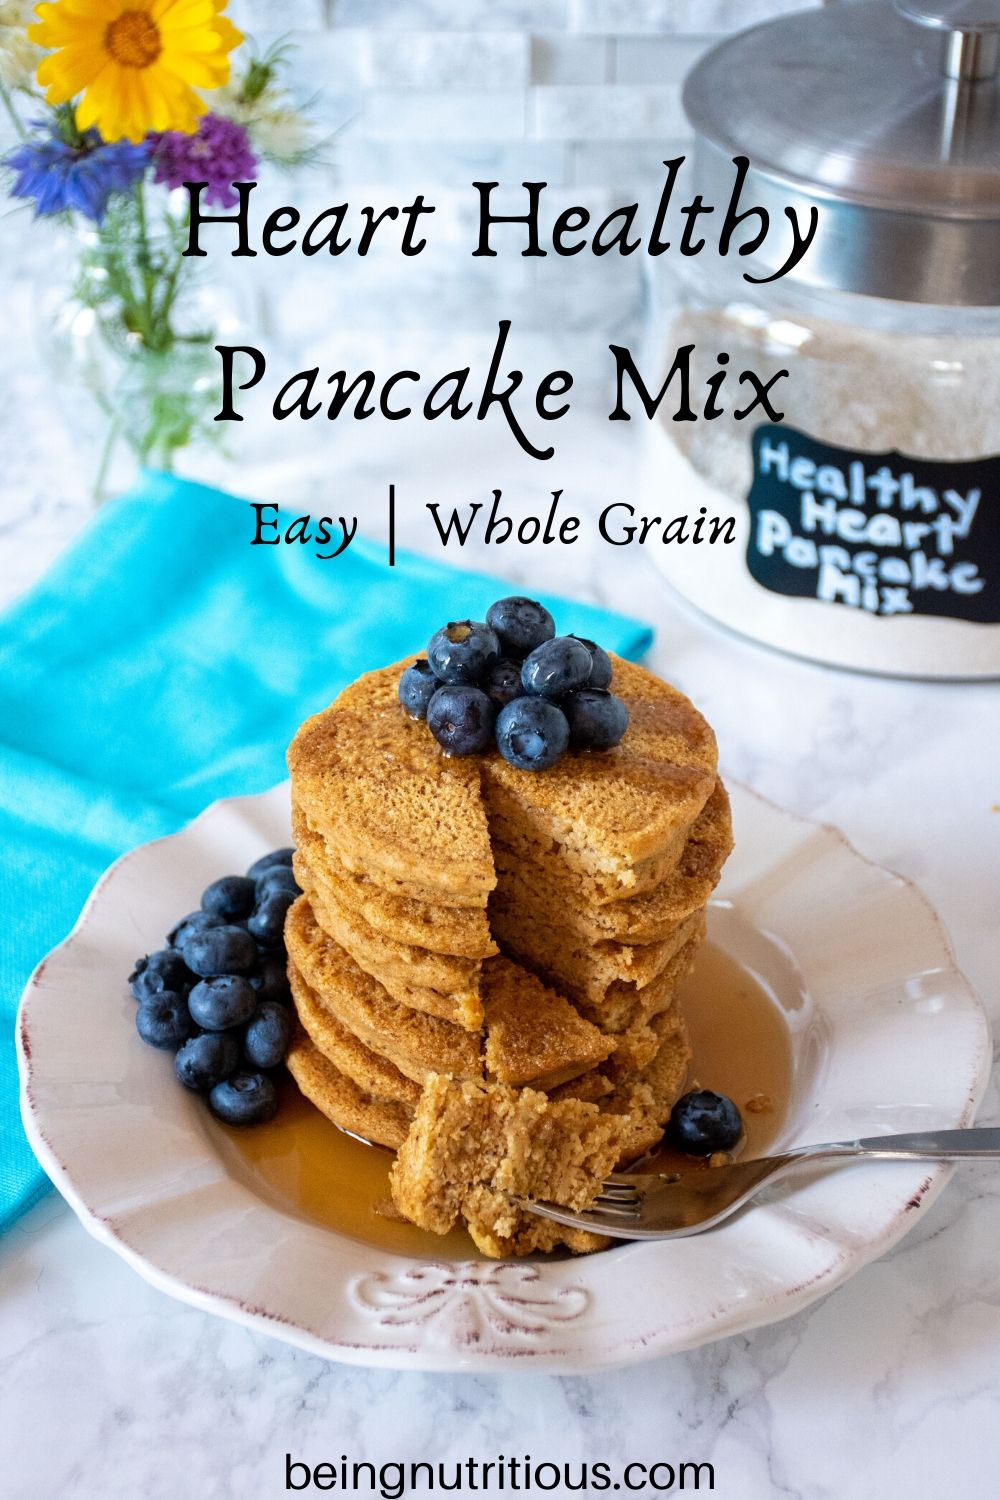 Stack of 6 whole wheat pancakes, with a pile of fresh blueberries on top, and syrup poured over. A fork with cut pieces of pancakes on it lies in front of the stack. Glass jar that reads 'healthy heart pancake mix' is visible in the background with a bouquet of flowers.